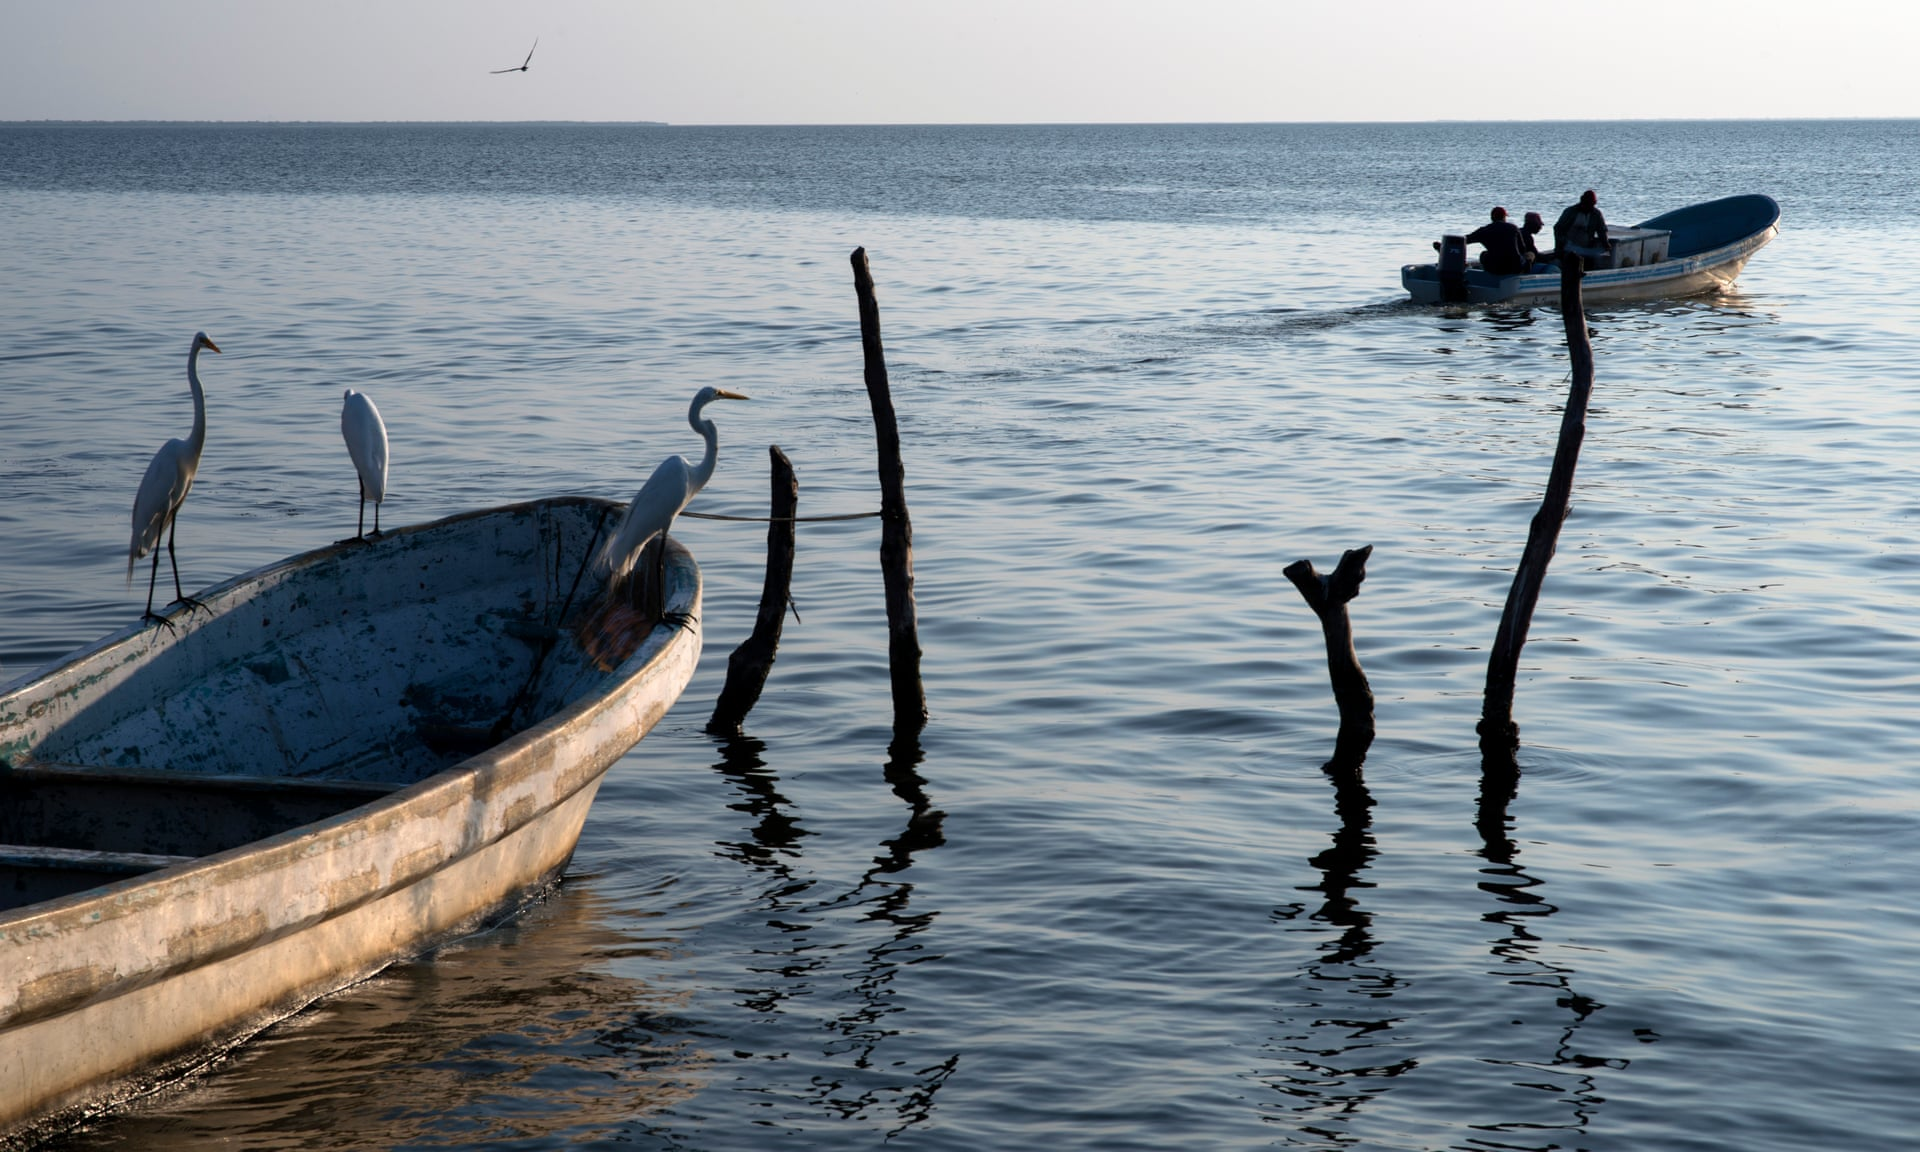 Fishermen in Paredón say the village is used by smugglers to transport migrants by sea. The boats come from Central America and stop here to refill petrol tanks. Photograph: Encarni Pindado for The Guardian